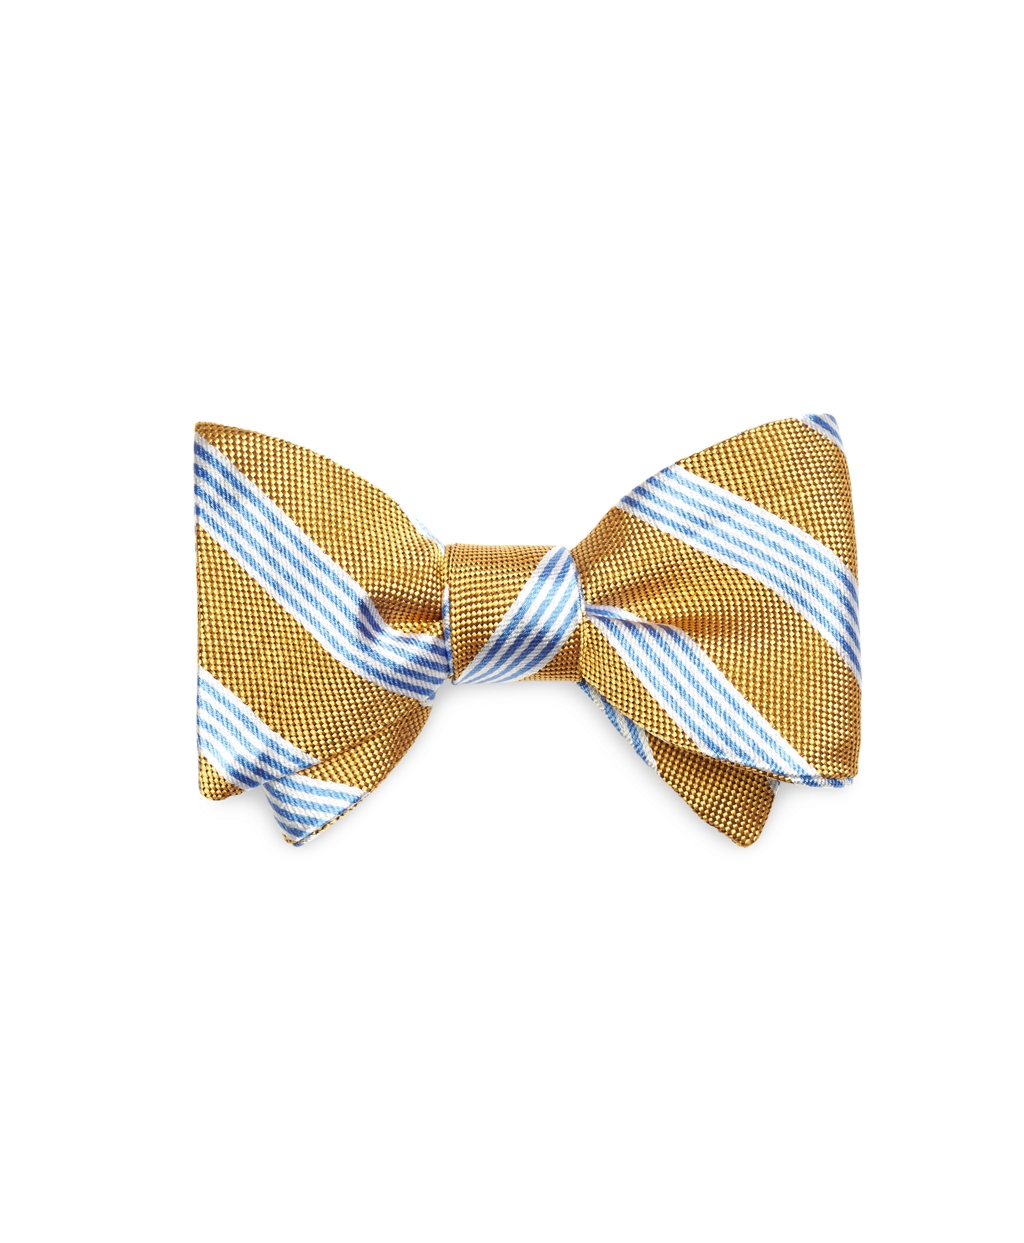 Lyst - Brooks Brothers Natte Music Stripe Bow Tie in ...